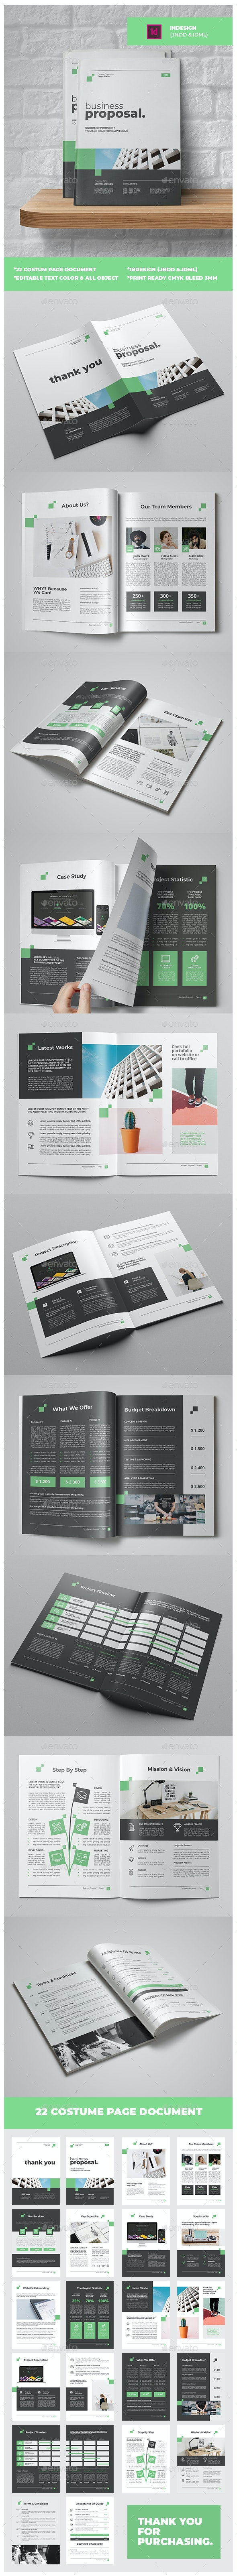 Busiines Proposal Vol.2 - Proposals & Invoices Stationery